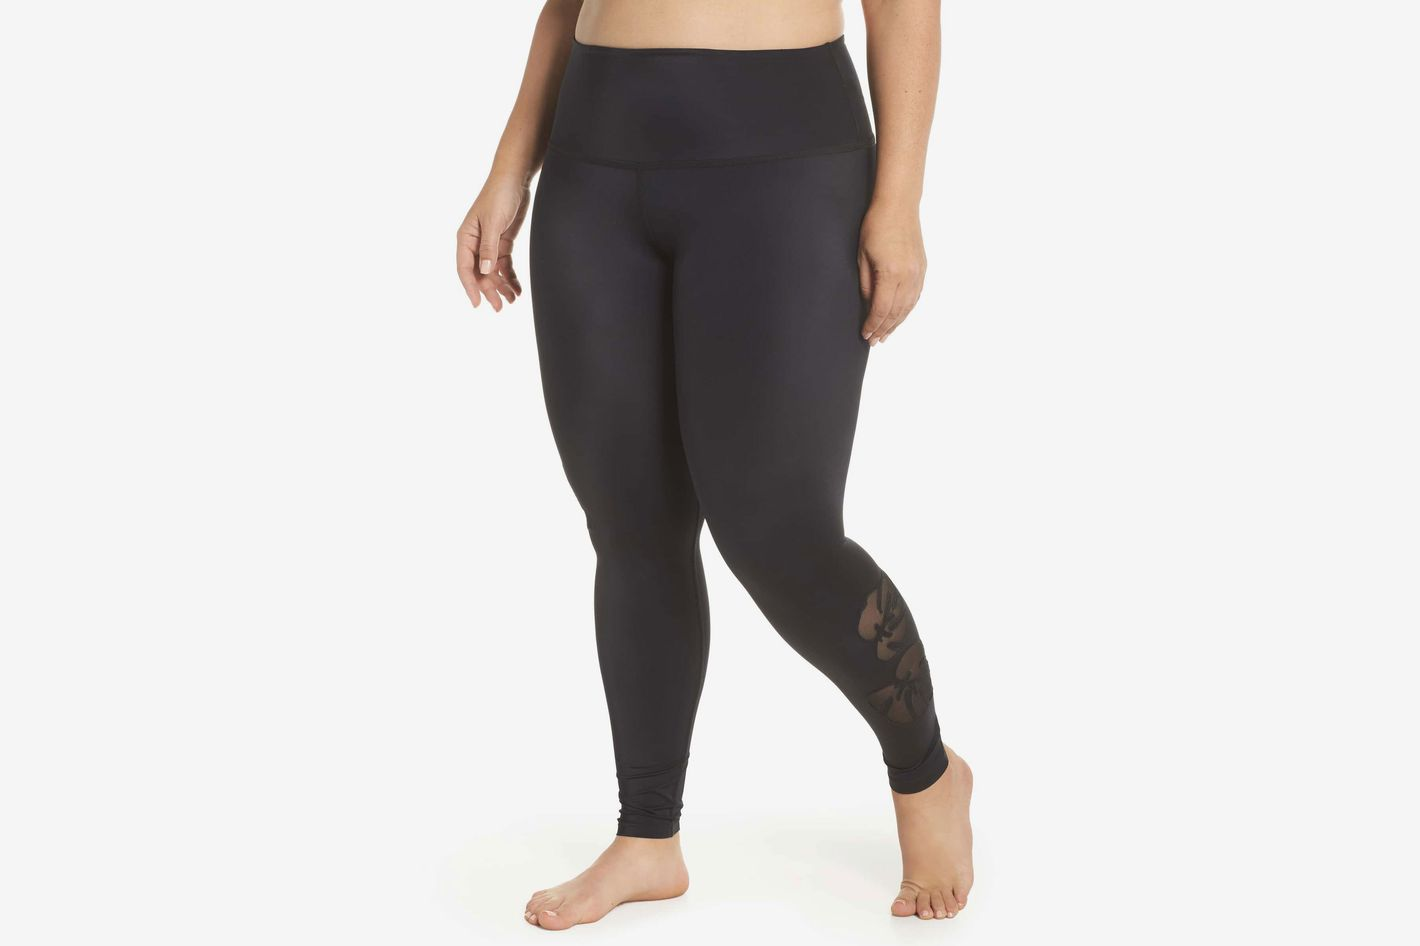 a64e10e8e6 Beyond Yoga Take Leaf High Waist Leggings at Nordstrom